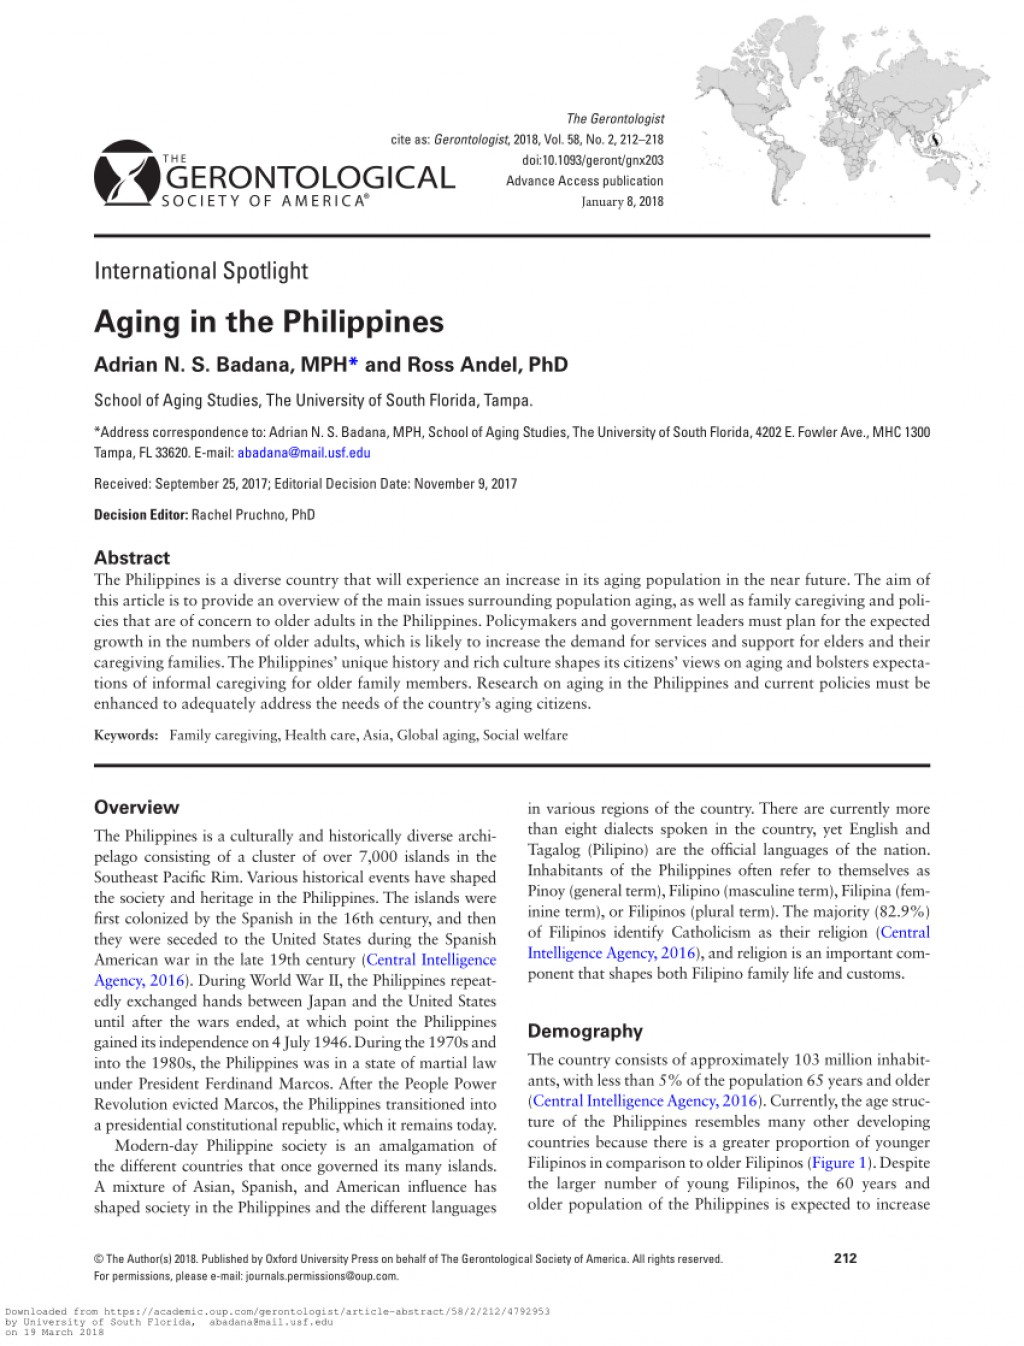 005 Poverty In The Philippines Research Paper Abstract Remarkable Large